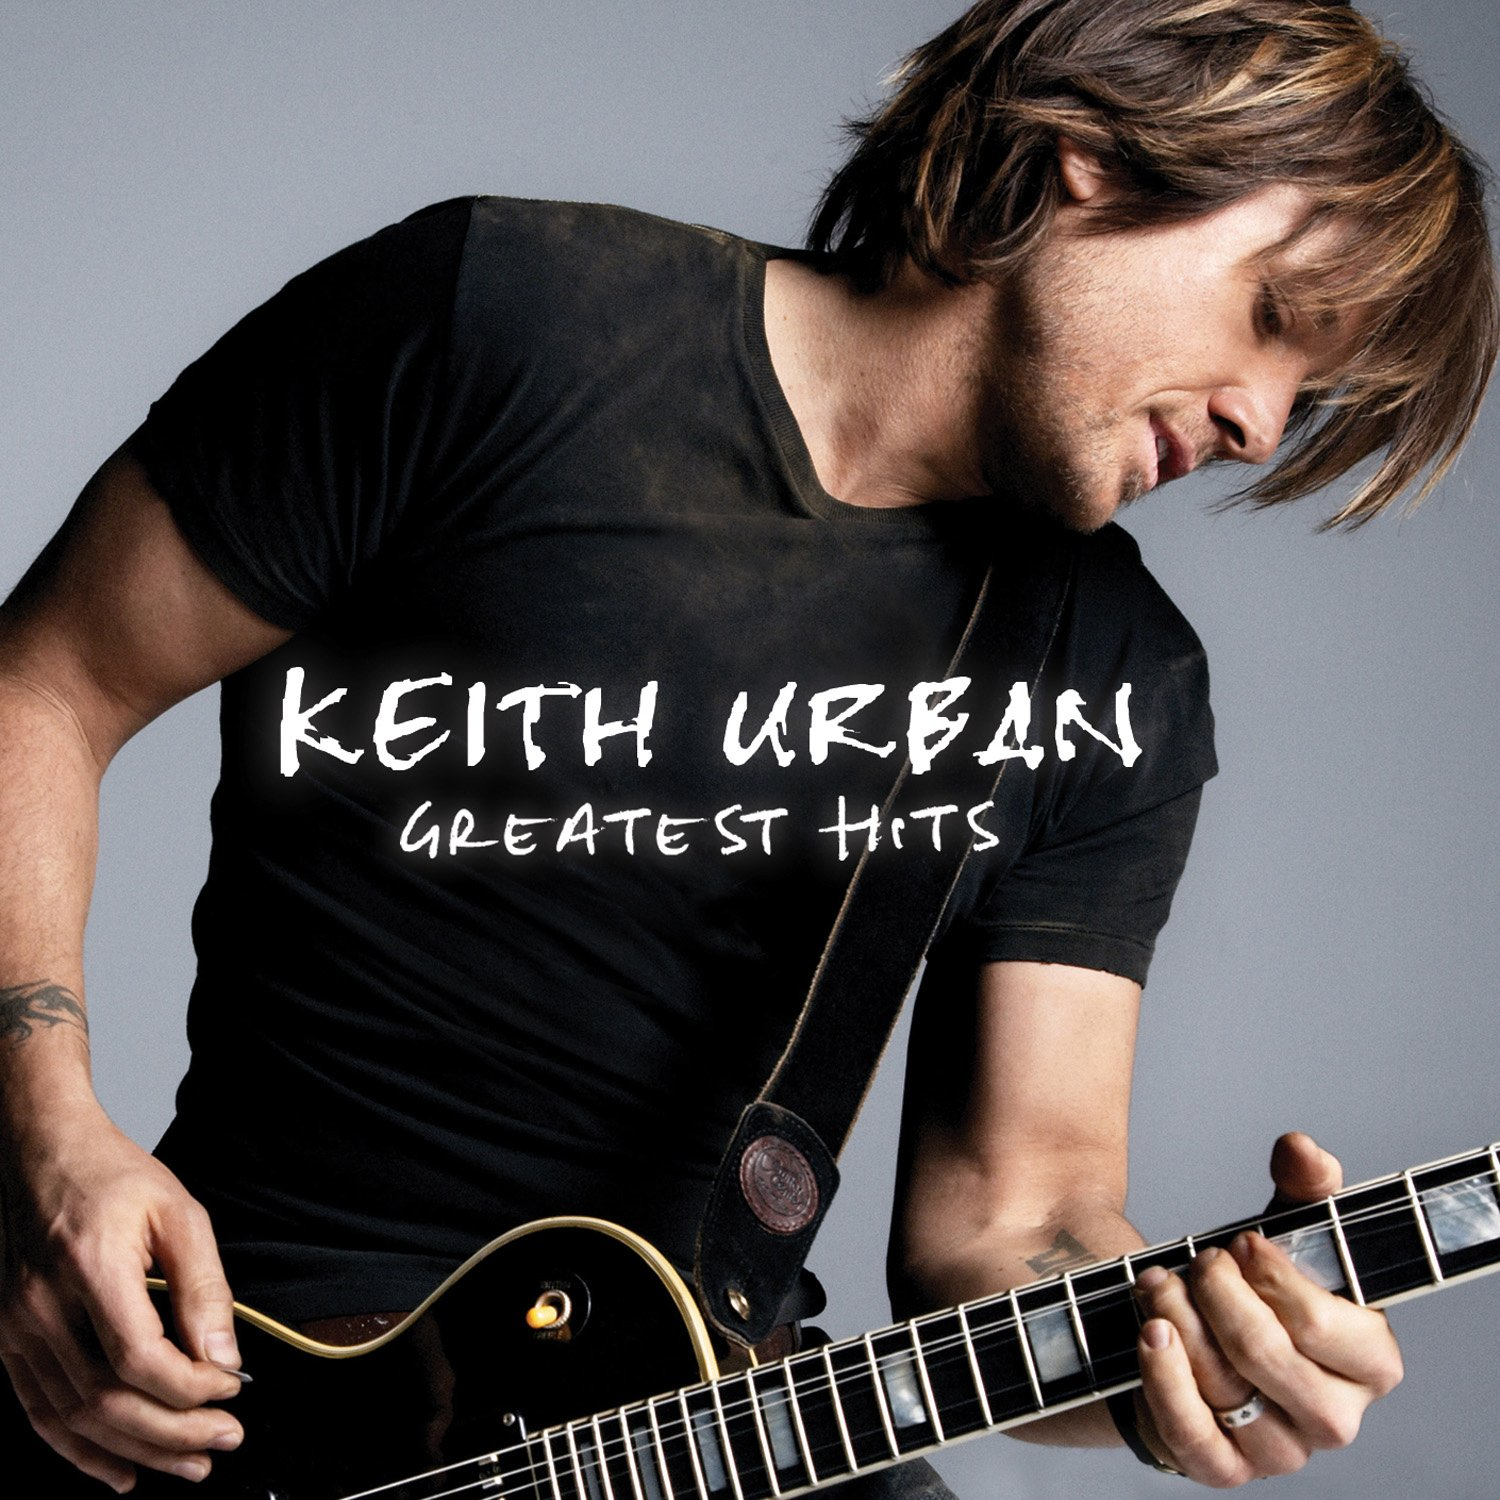 Keith Urban, Greatest Hits